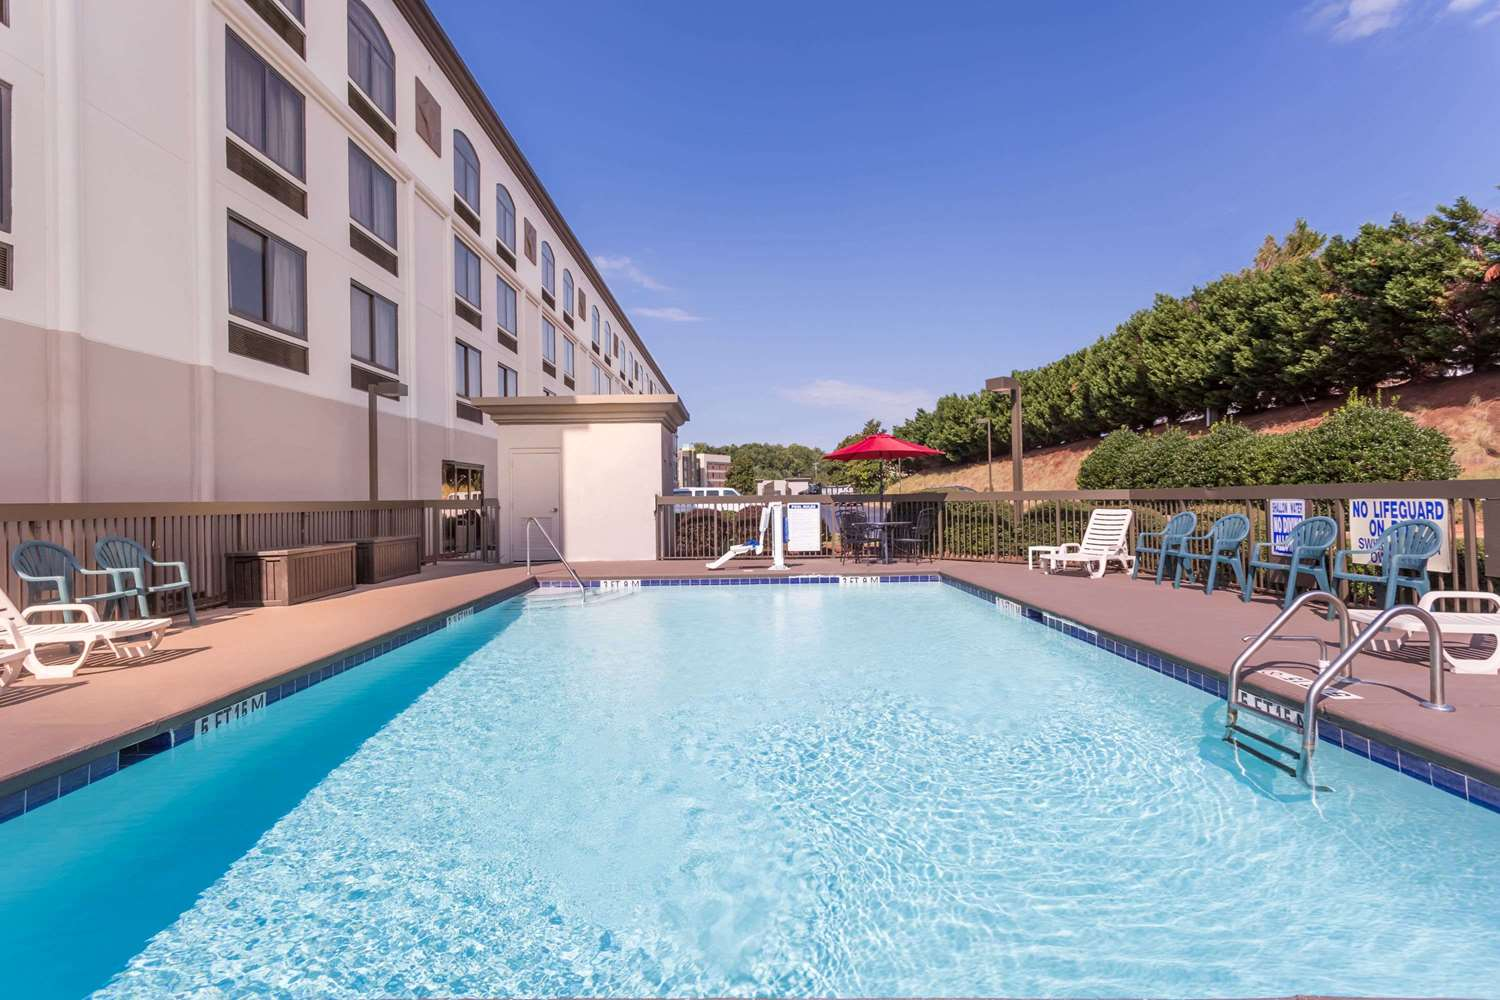 Pool - Wingate by Wyndham Hotel Airport Greenville